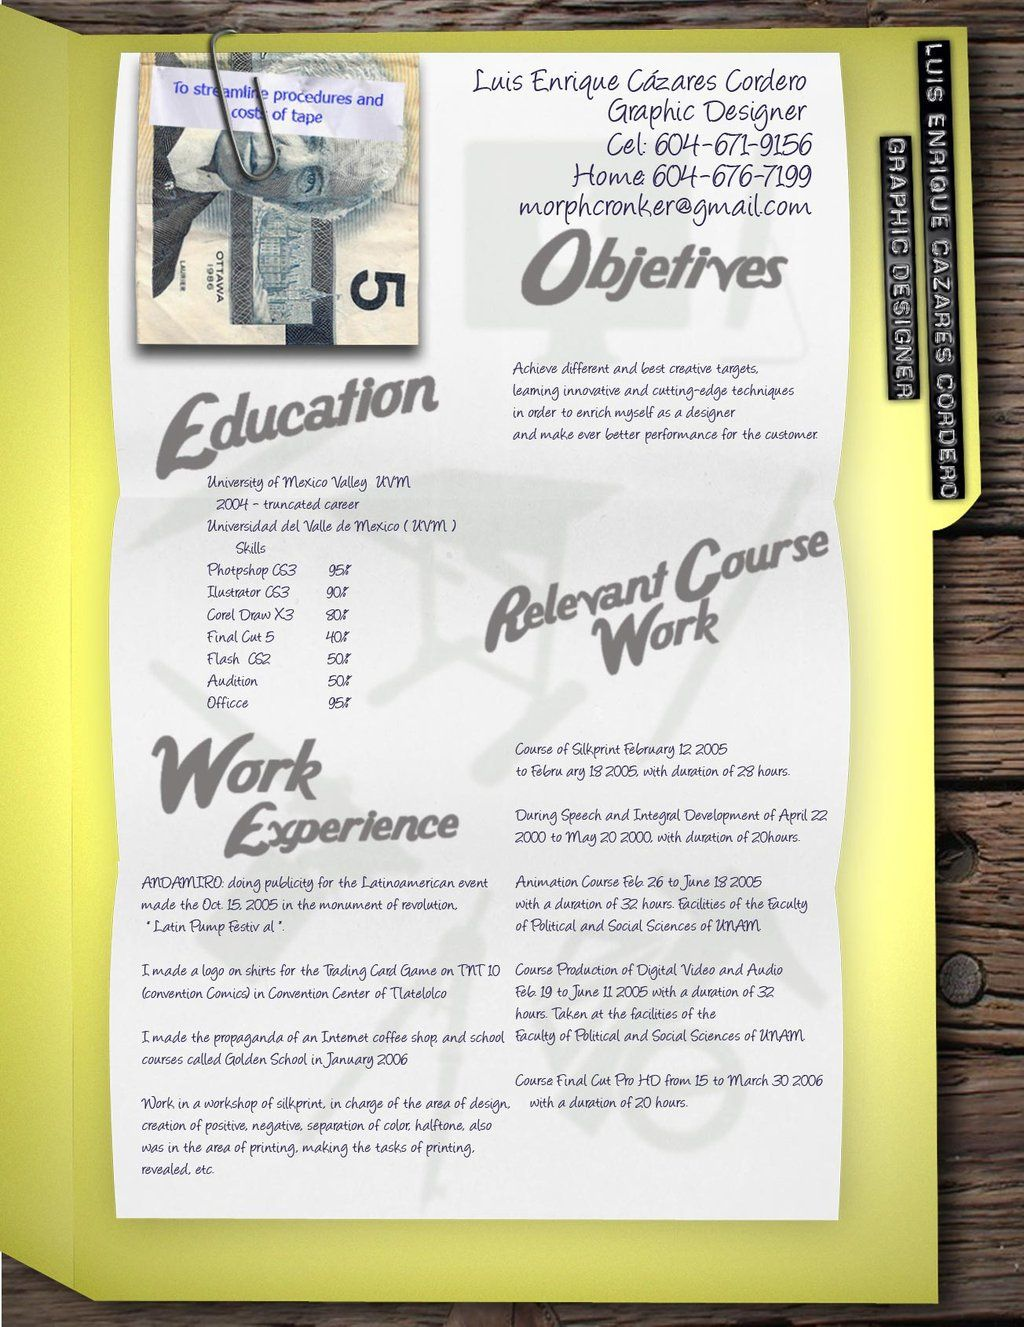 free resume builder yahoo free resume templates download for freshers latest free resume templates download for freshers latest builder our website - Free Resume Builder Yahoo